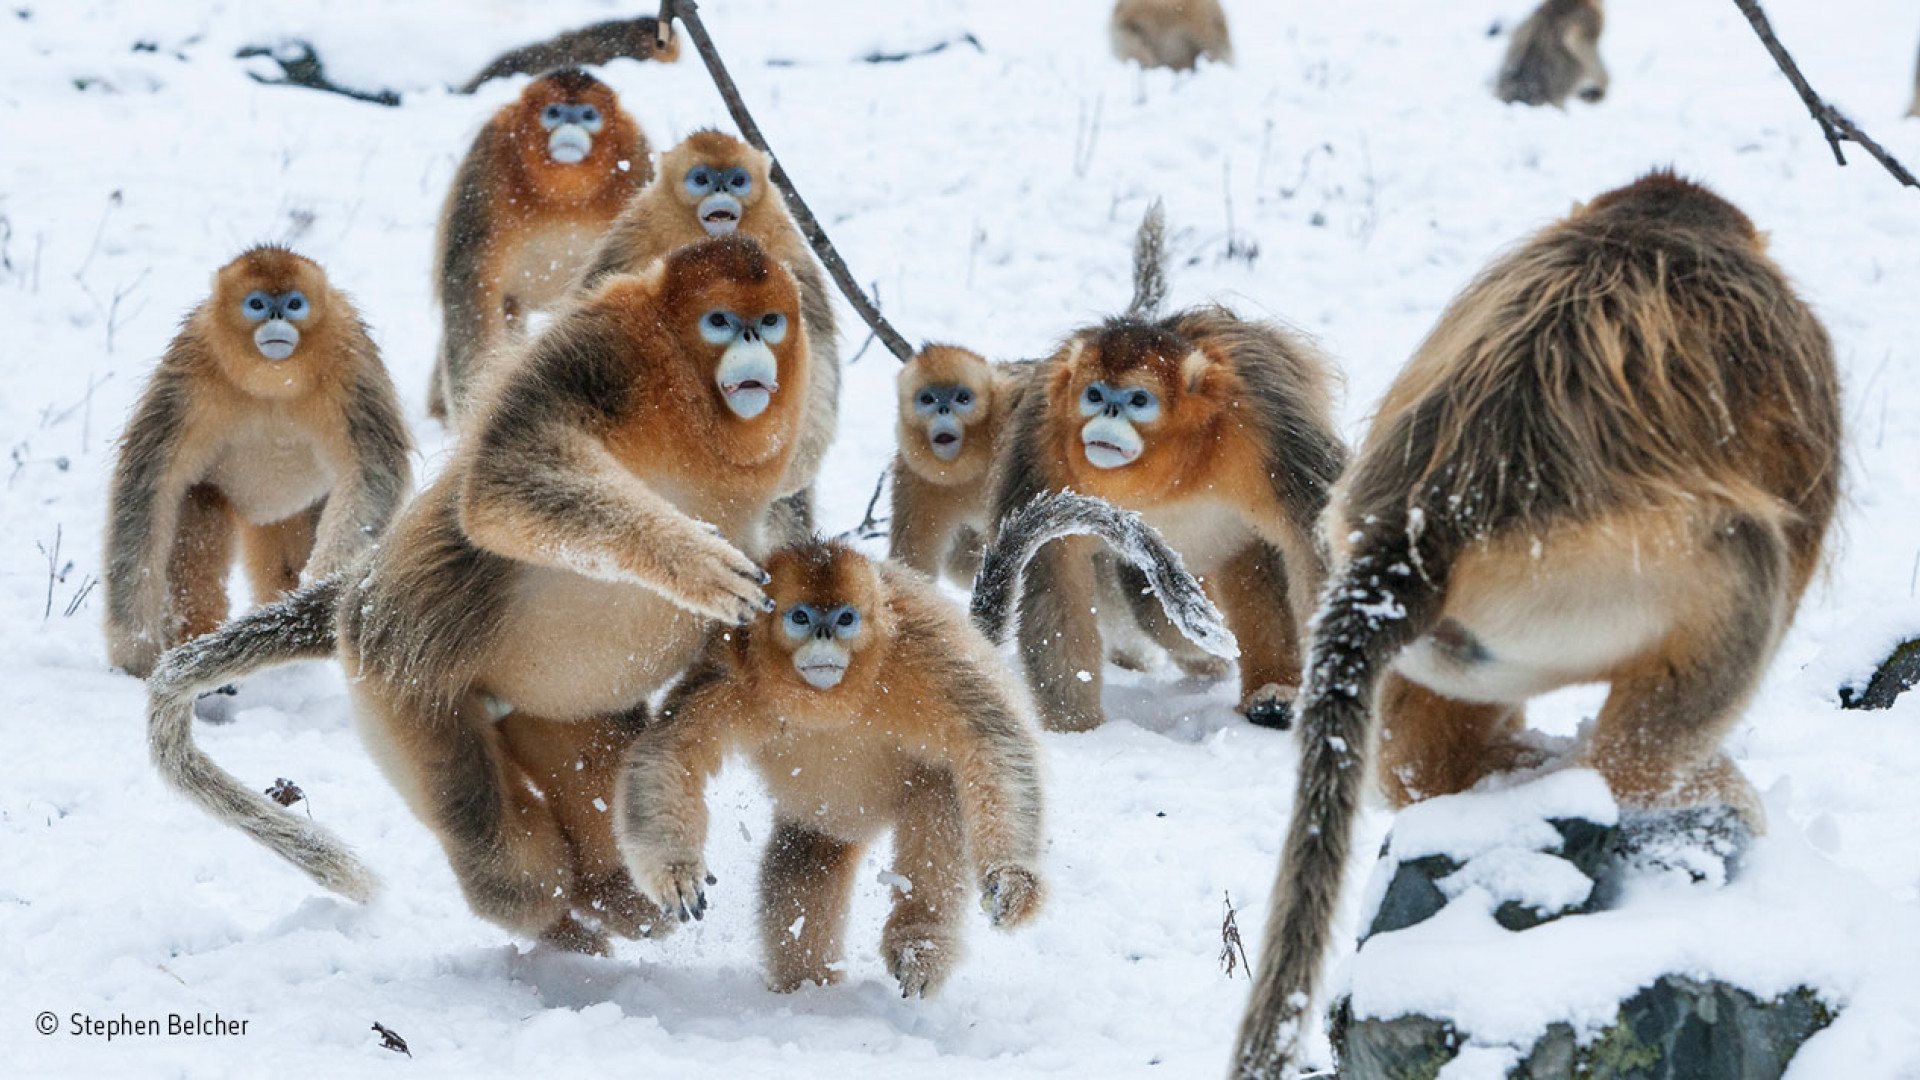 Male snub-nosed monkeys fighting in China